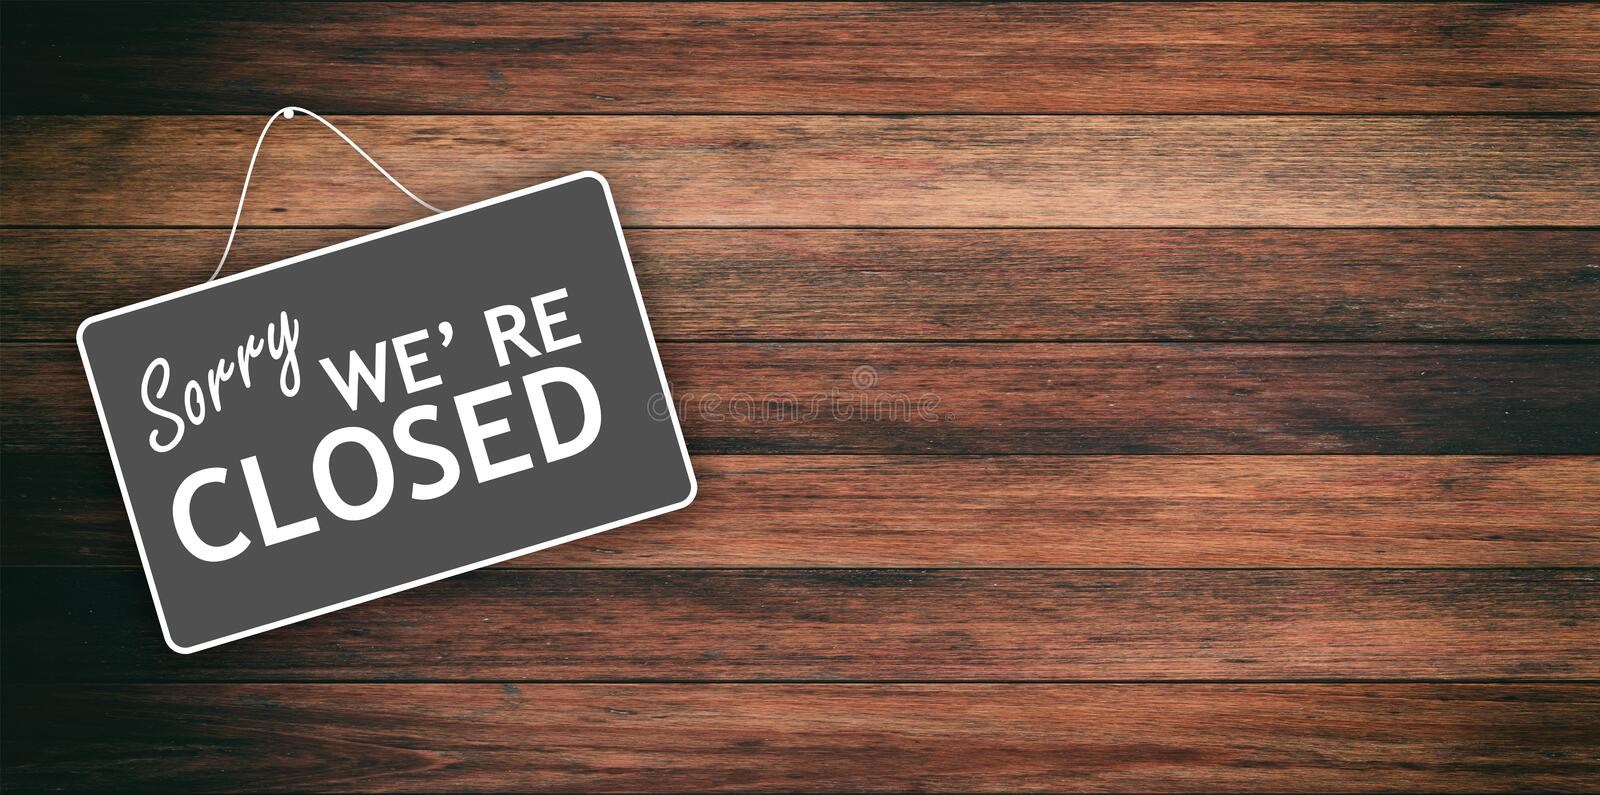 Sorry we are closed sign on wooden background stock image